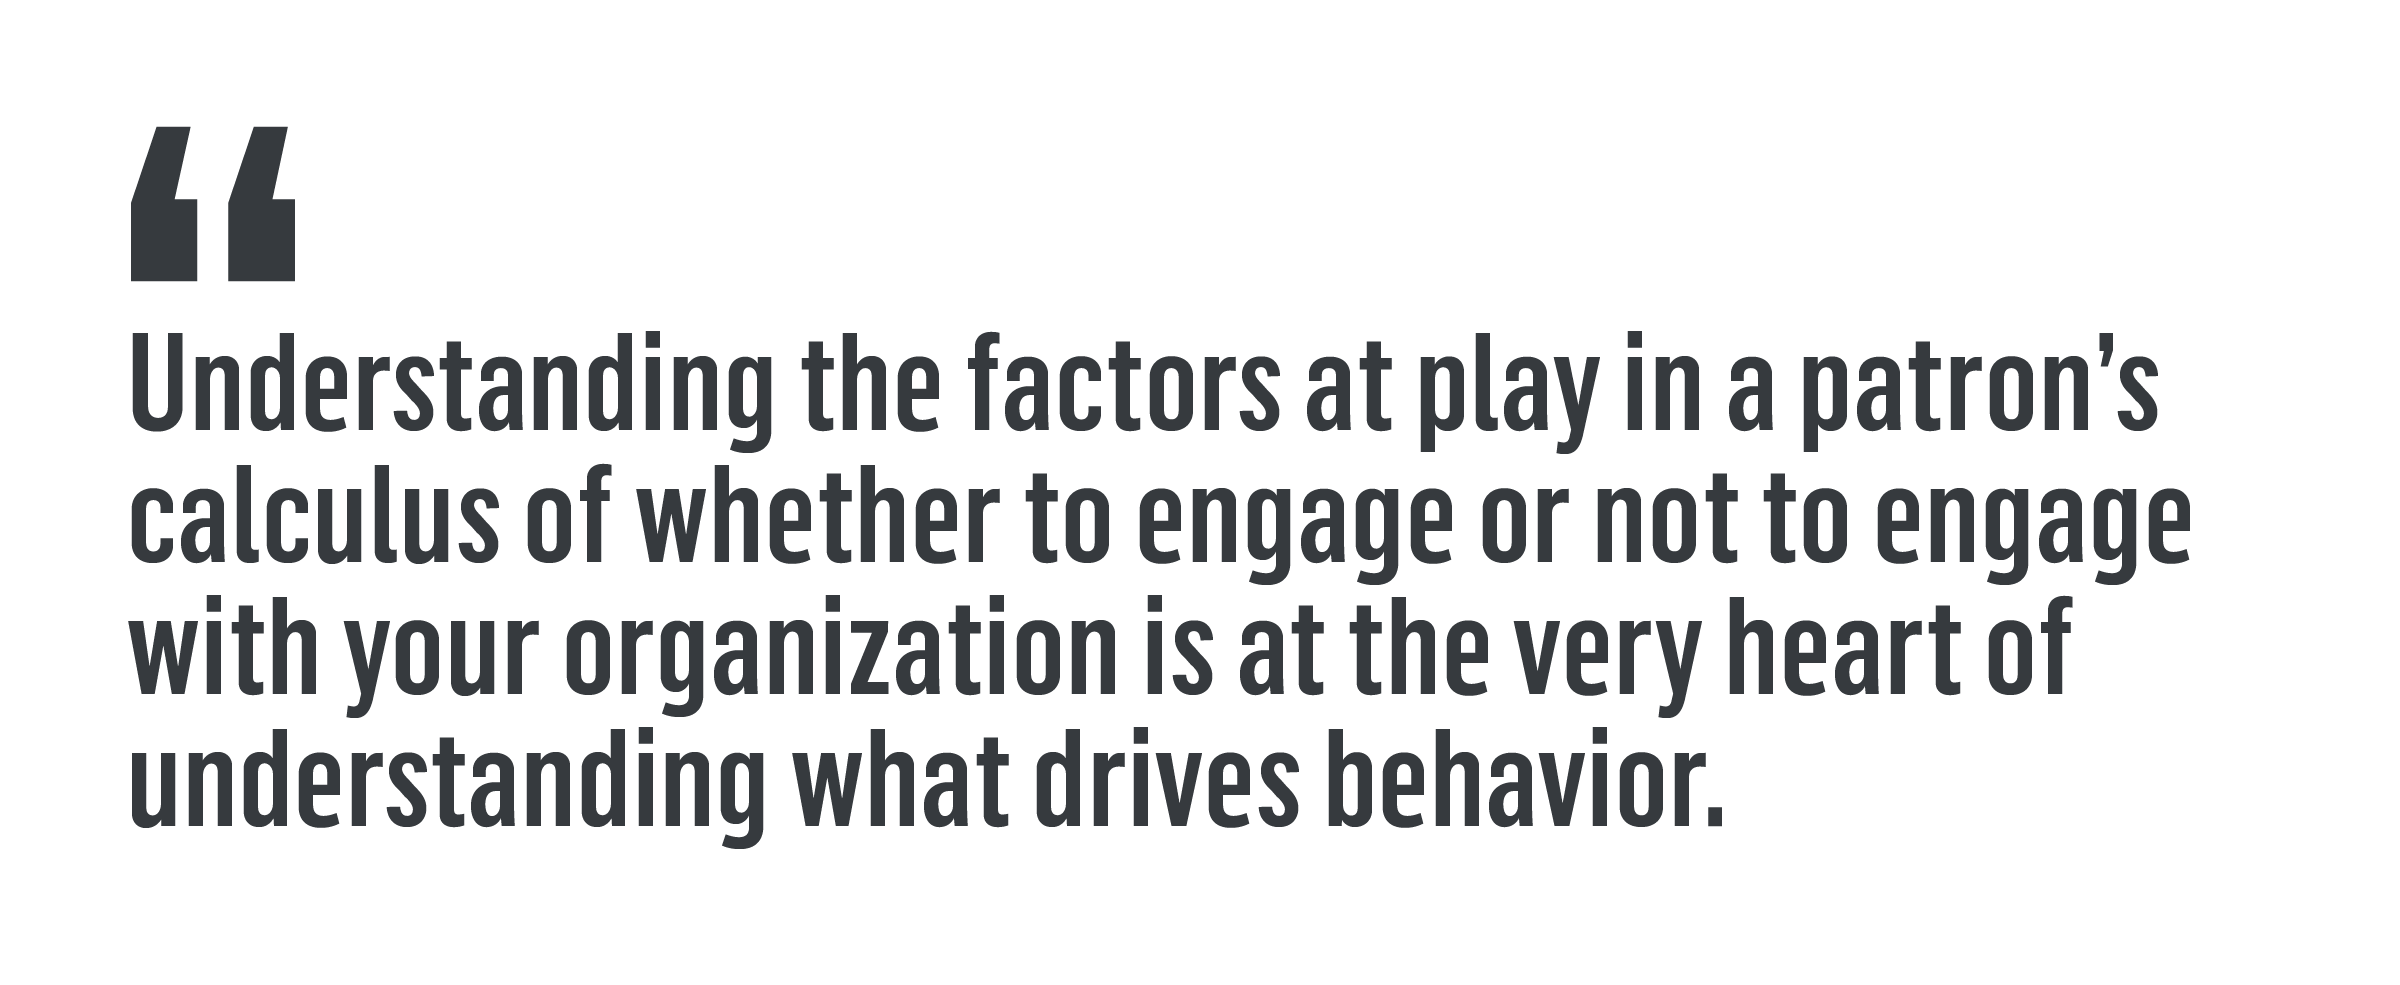 """Understanding the factors at play in a patron's calculus of whether to engage or not to engage with your organization is at the very heart of understanding what drives behavior."""